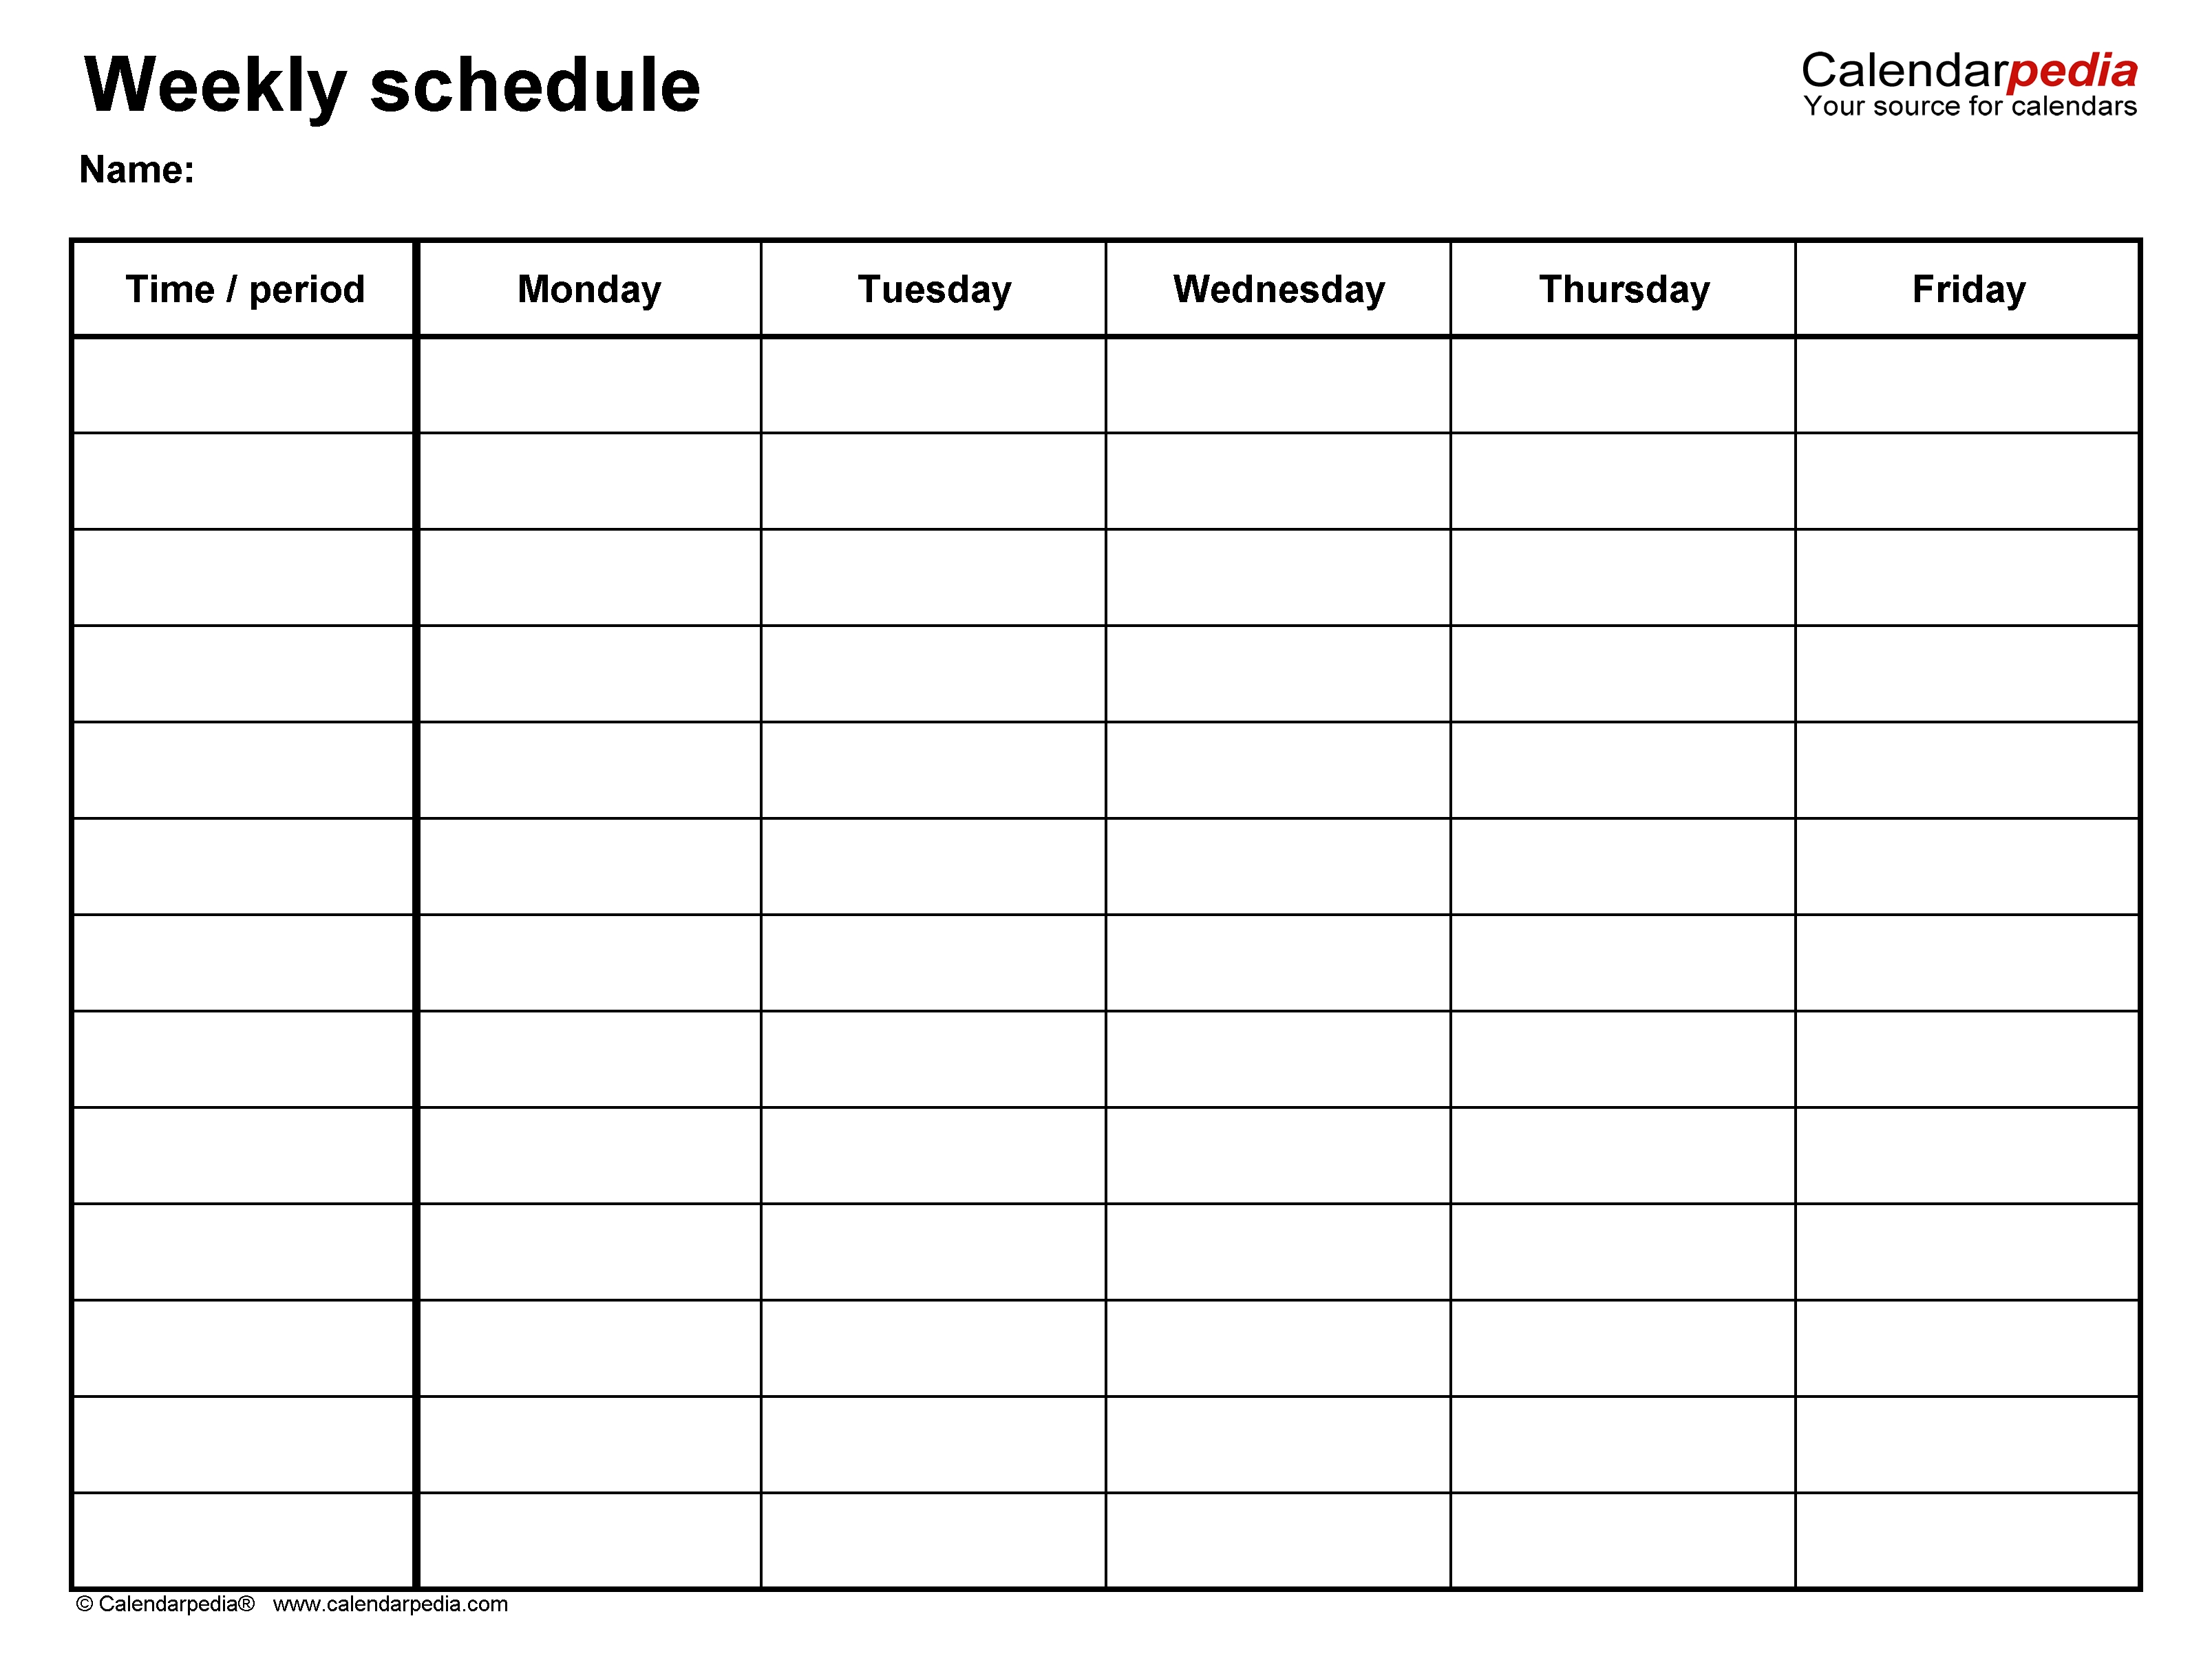 Free Weekly Schedule Templates For Pdf - 18 Templates for Weekly Planner With Times Pdf